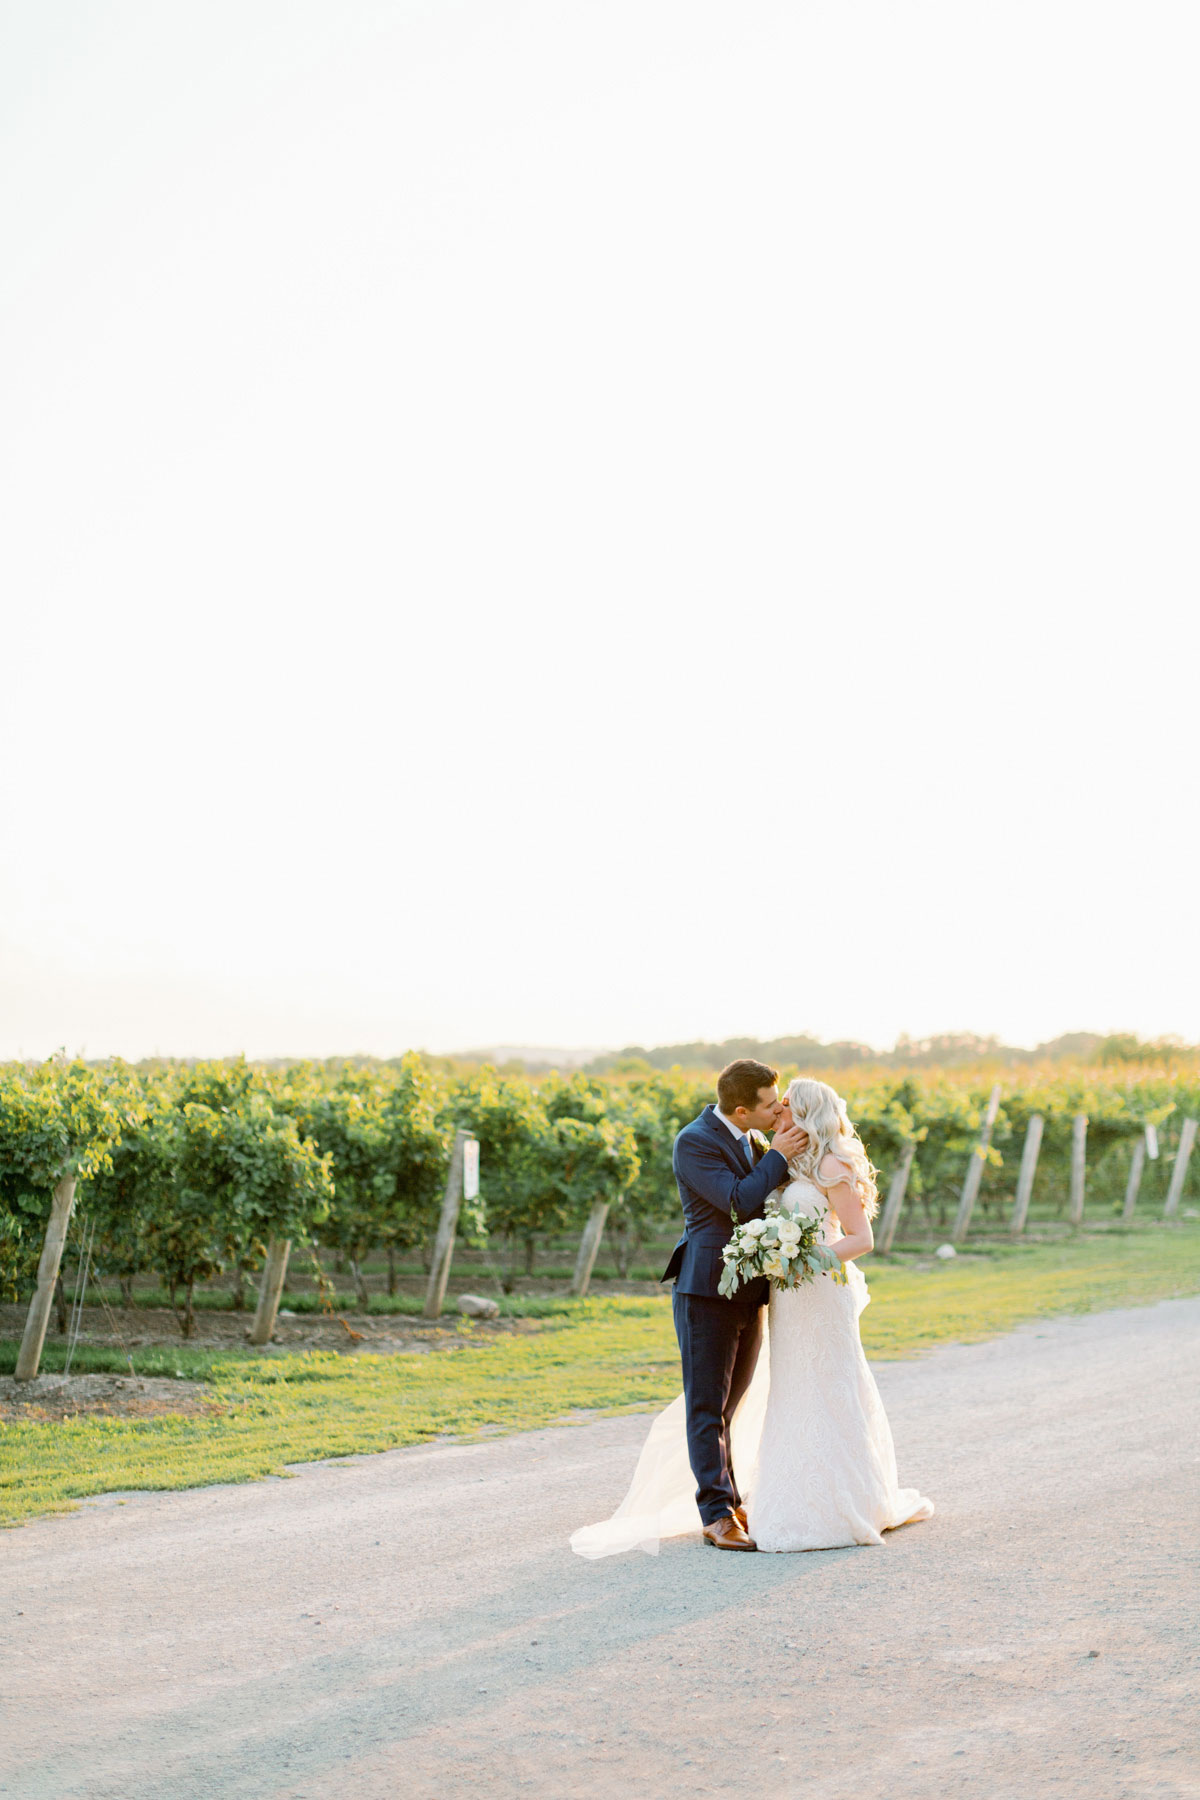 vineyard-bride-kayla-yestal-outdoor-summer-wedding-honsberger-estate-winery-niagara-toronto-vendor-0046.jpg